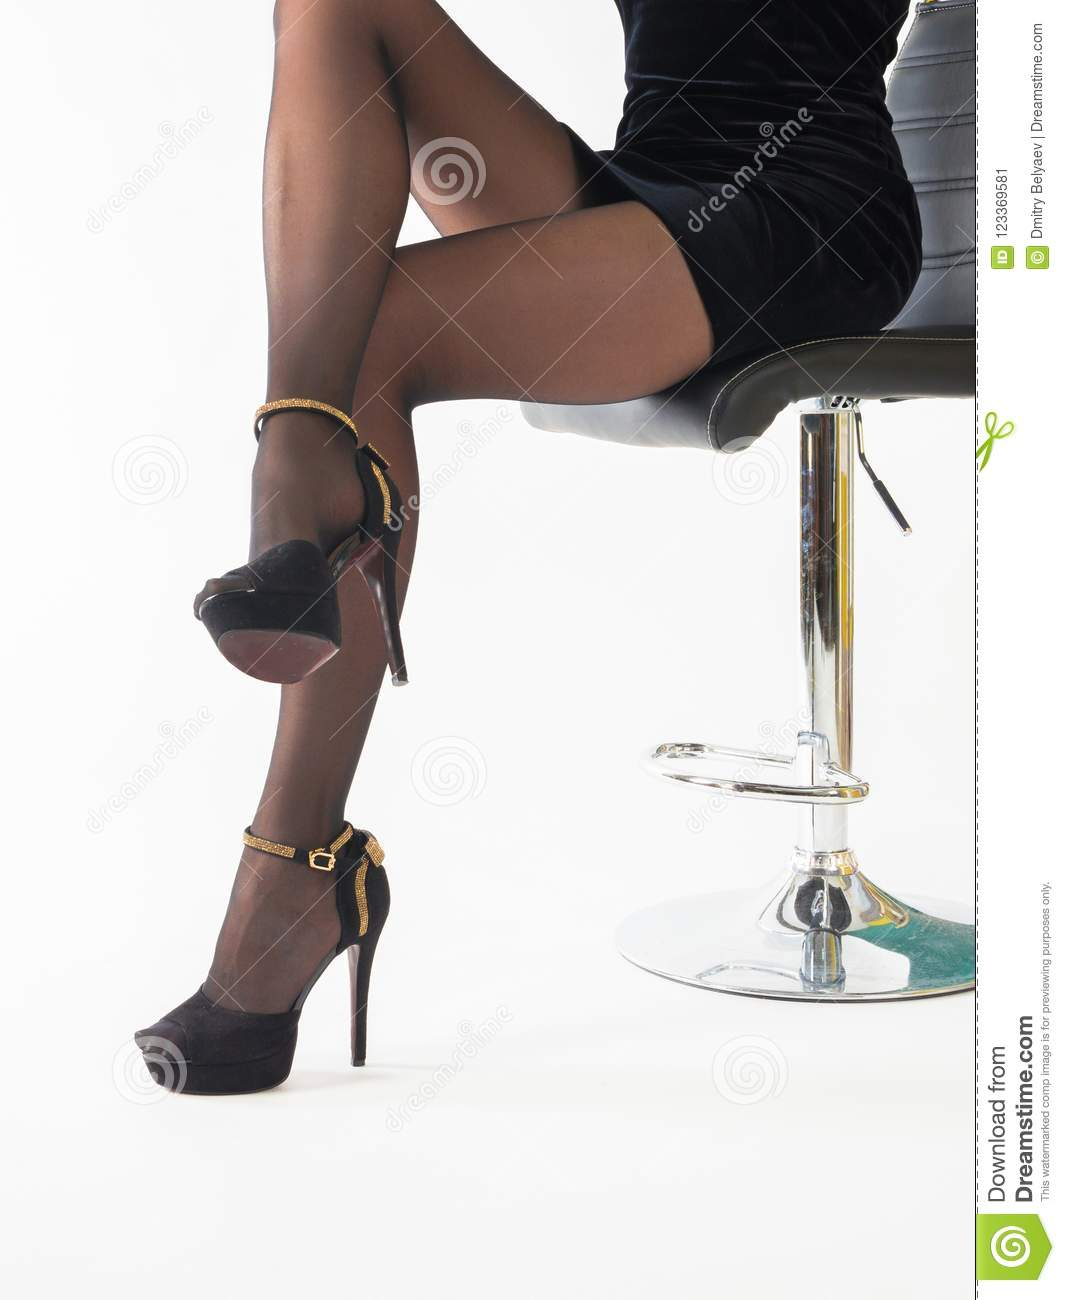 acb73e916cd woman wearing high heels shoes and short skirt sitting in office chair.  Isolated on white